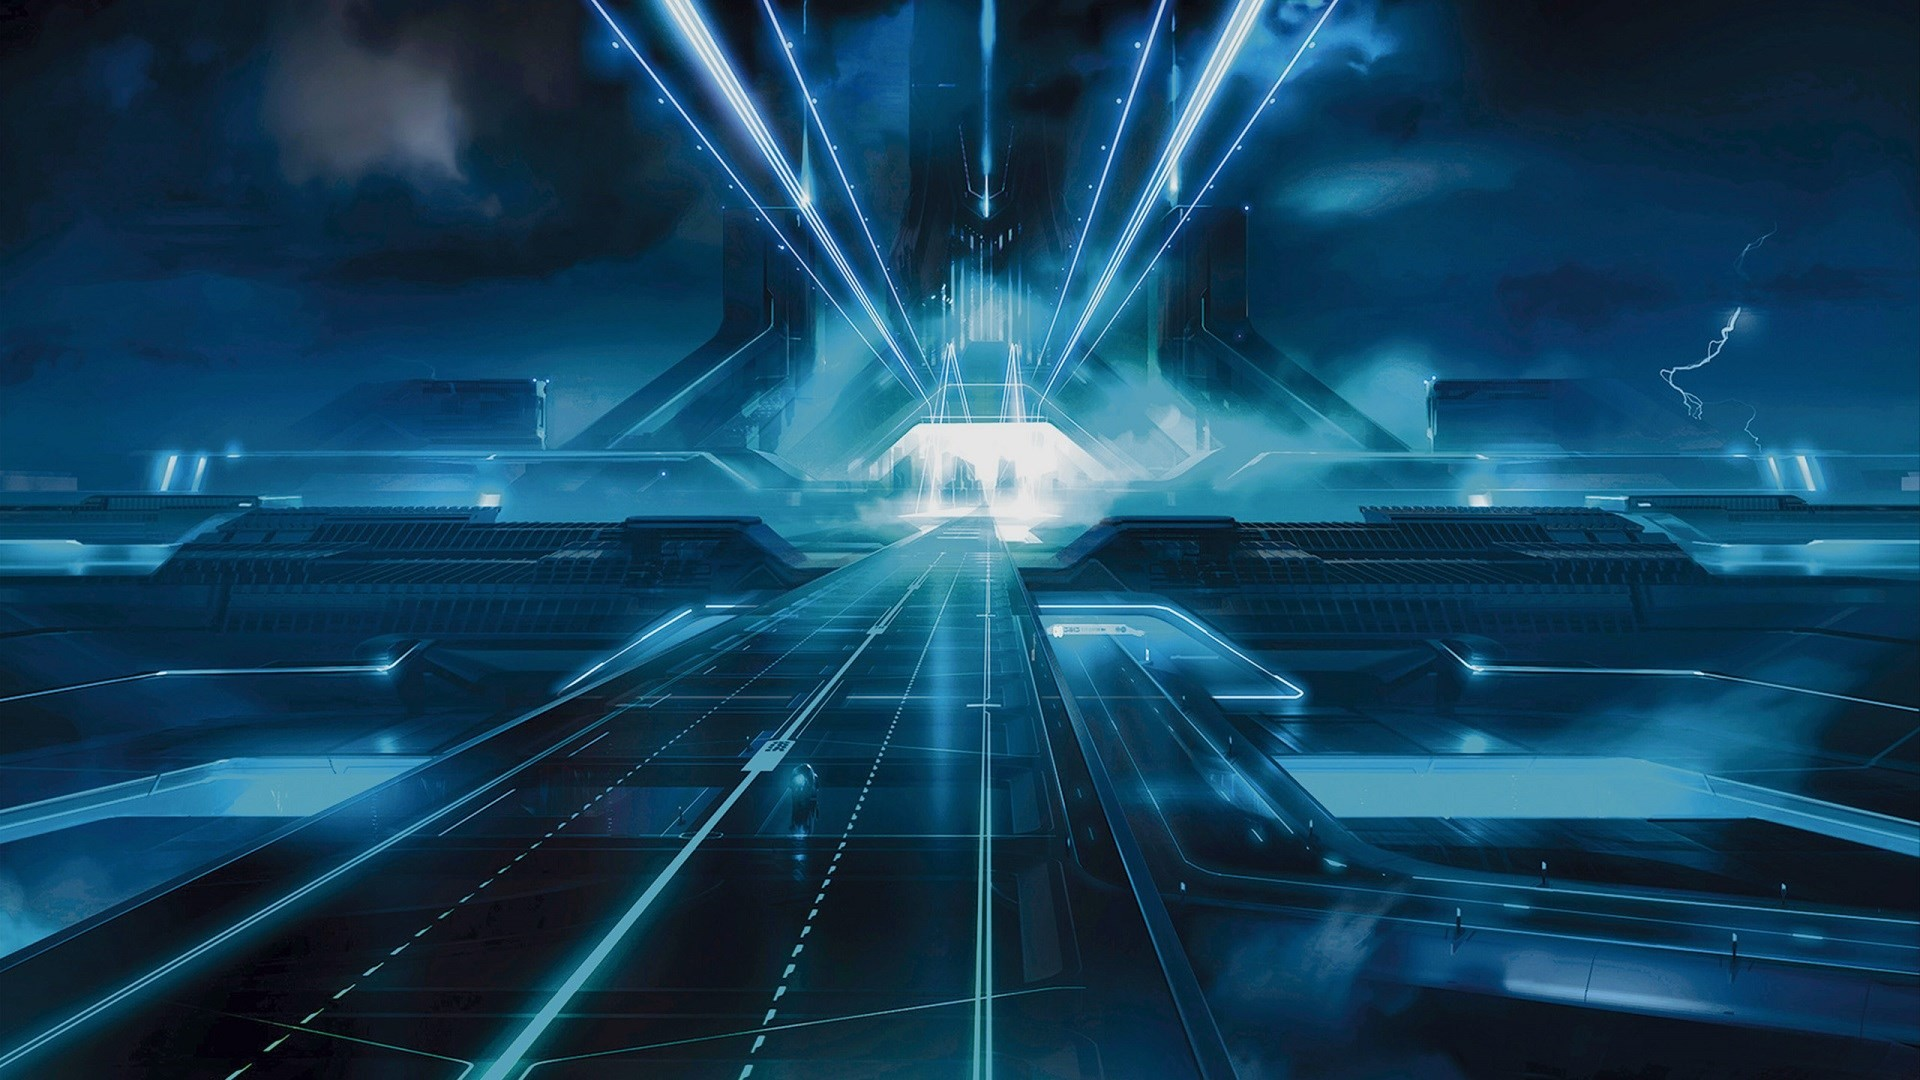 Tron Legacy Backgrounds 75 Images